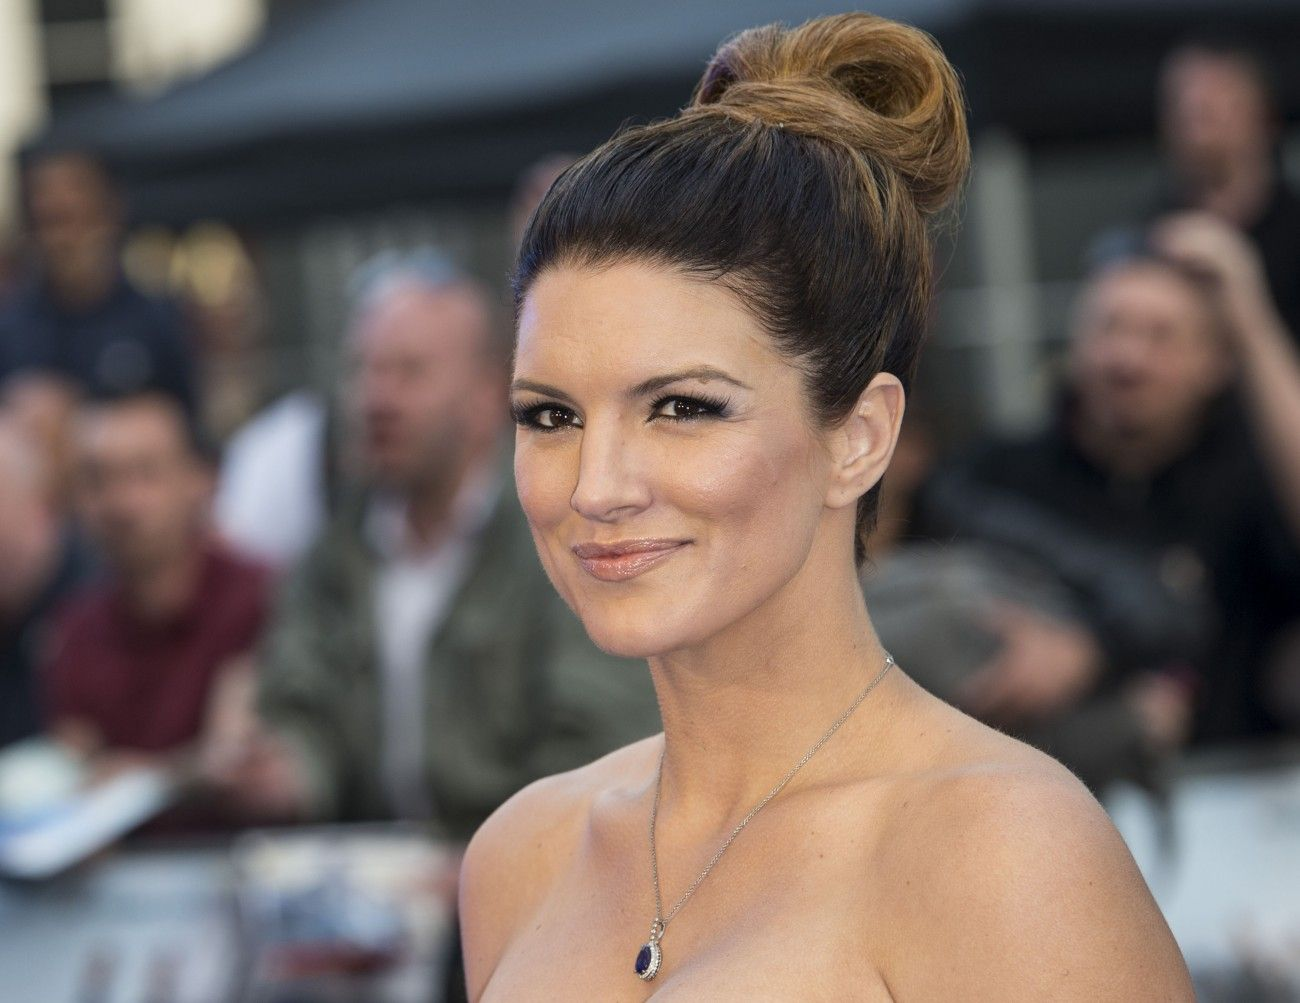 Gina Carano Height, Weight, Age, Affairs, Husband & Facts. Gina Carano